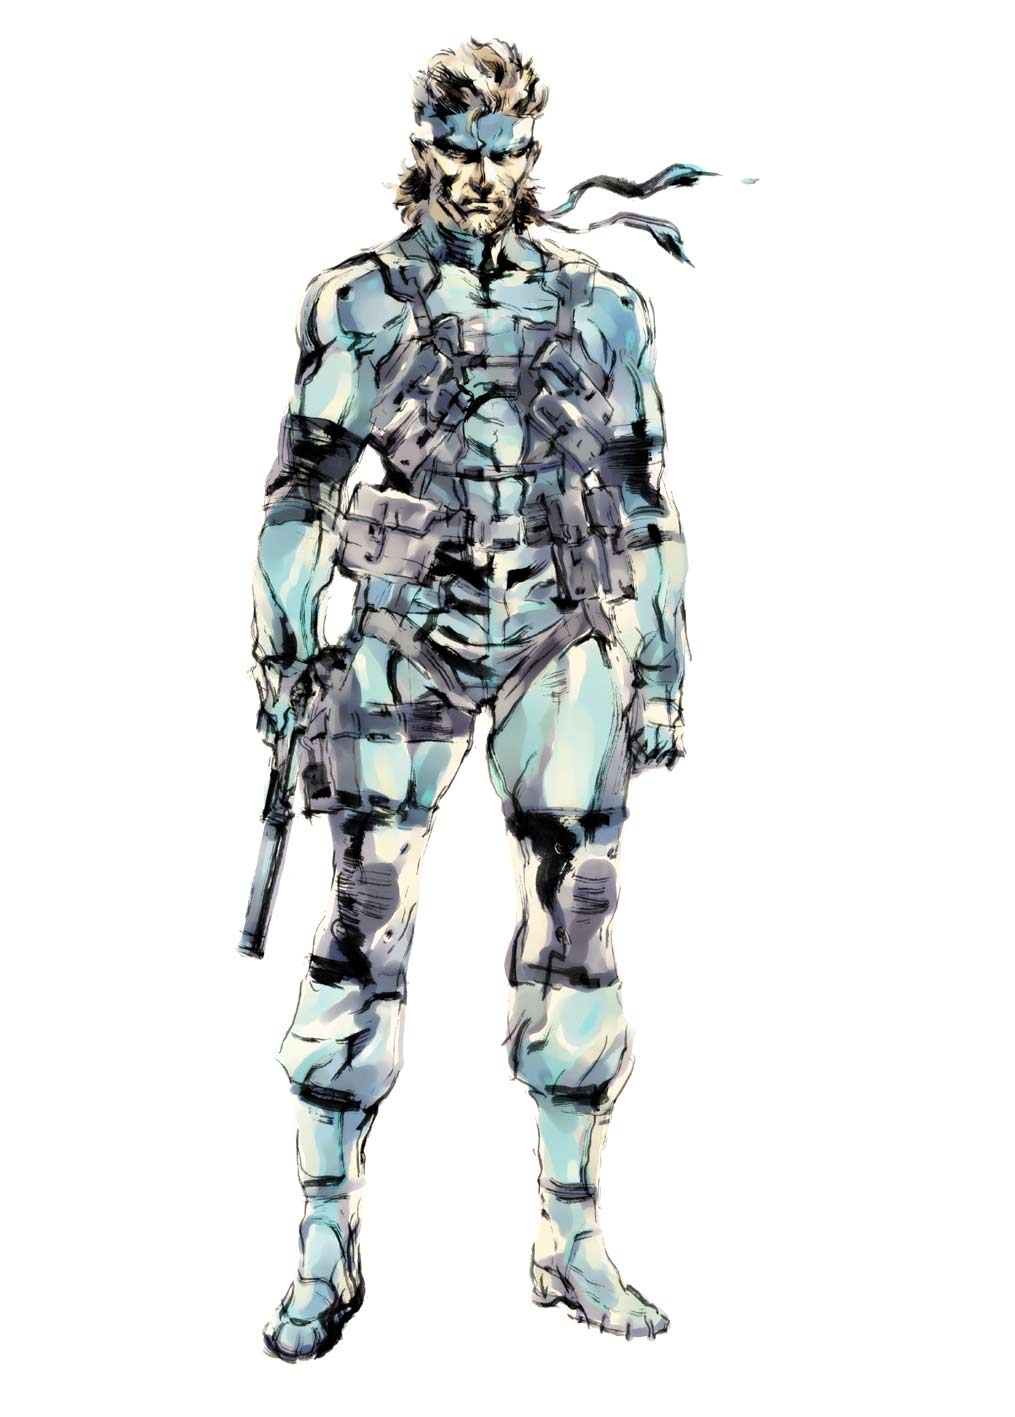 Solid Snake MGS2S by sidneymadmax on DeviantArt